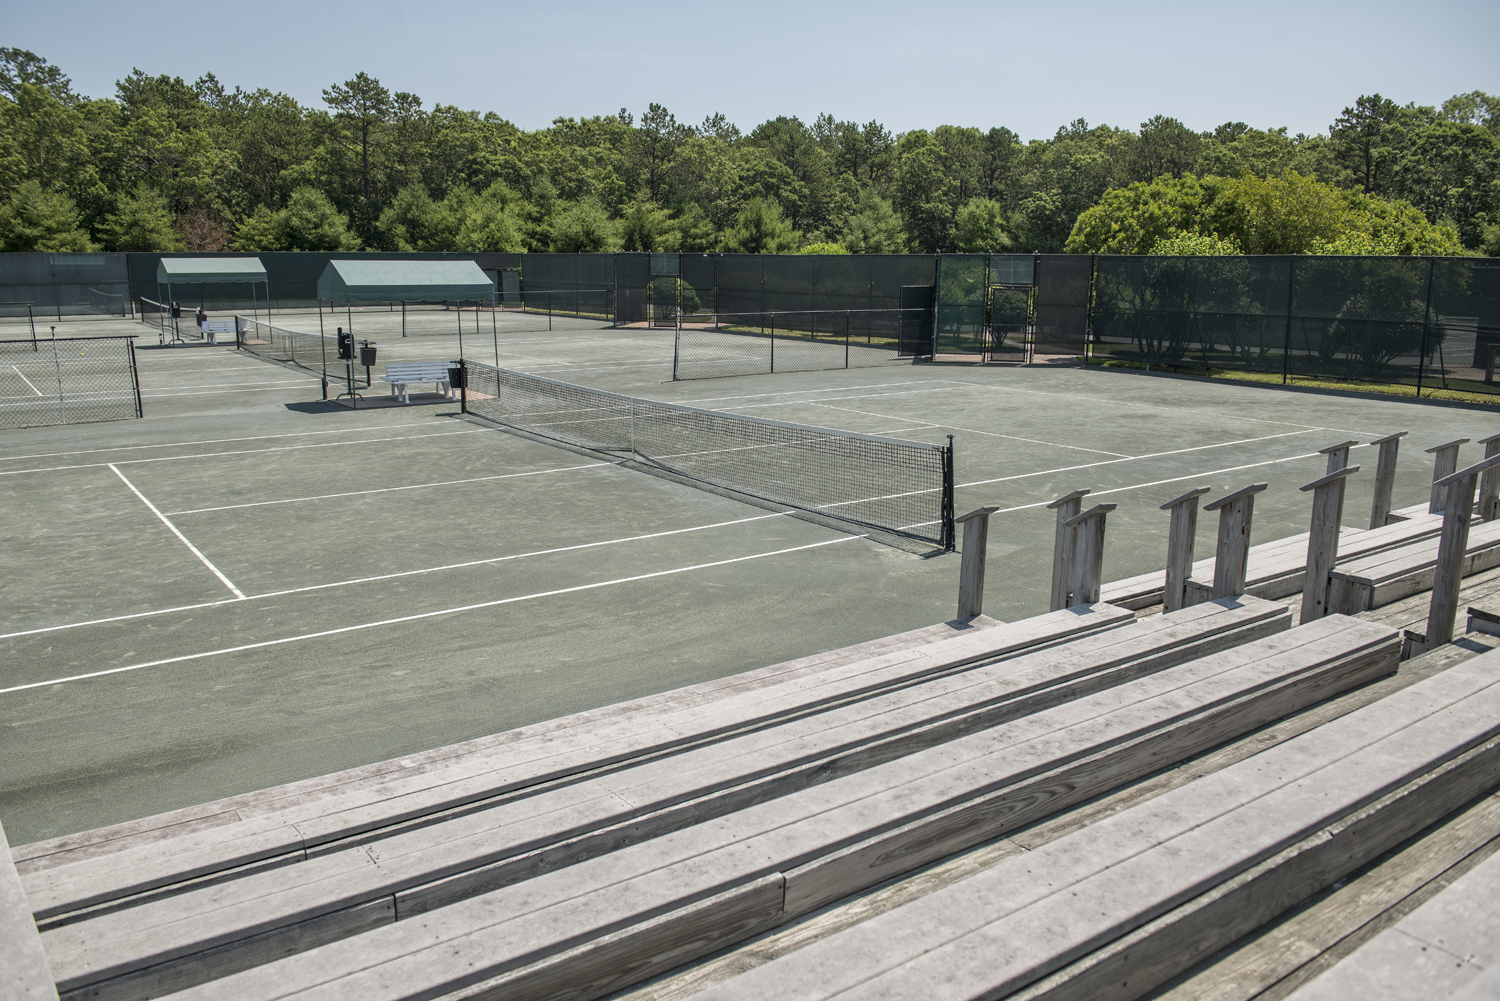 East Hampton Indoor Tennis Club